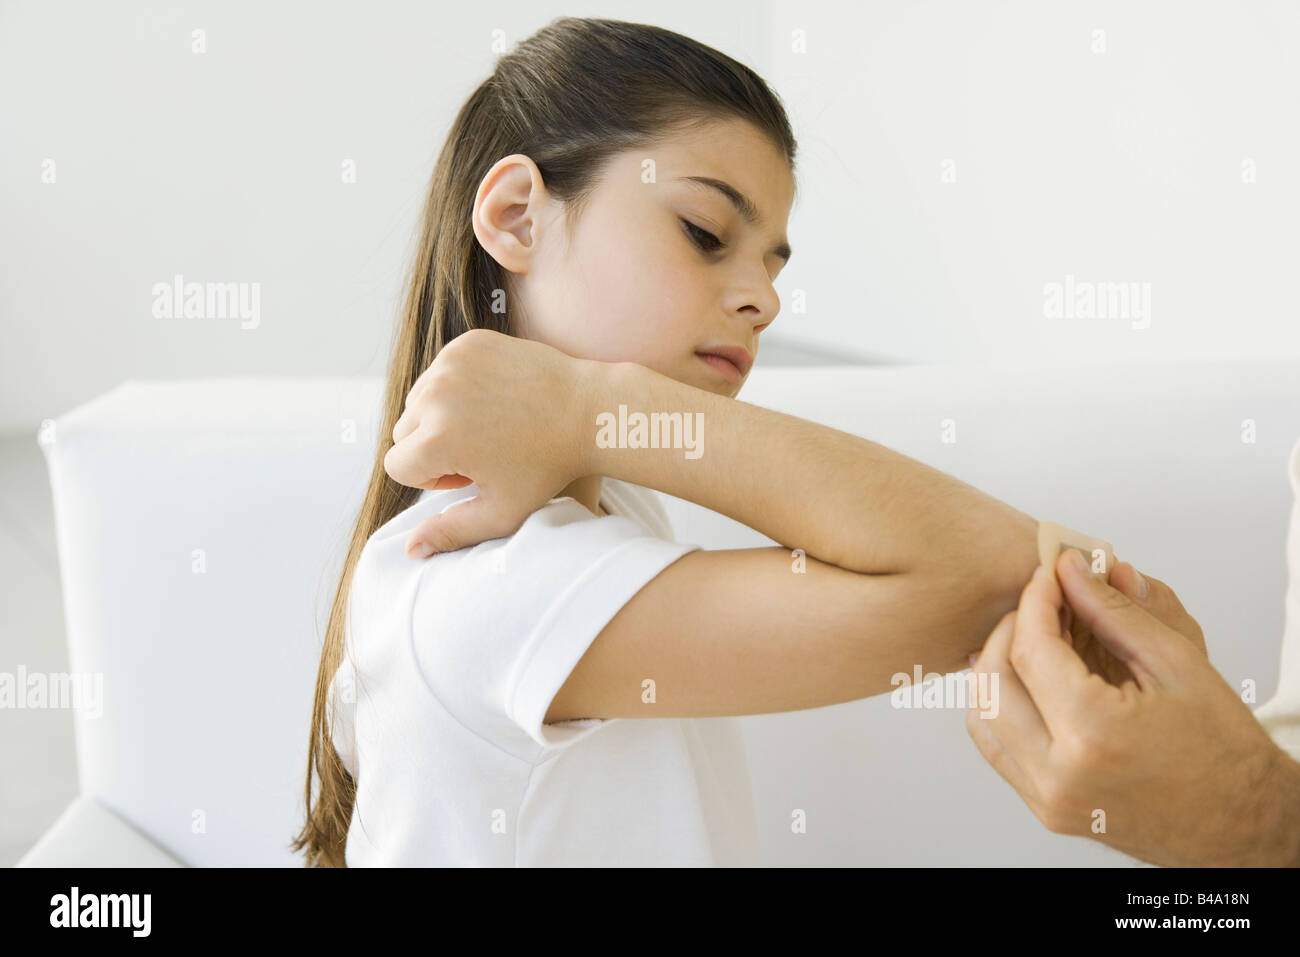 Man putting adhesive bandage on girl's elbow, cropped view Stock Photo